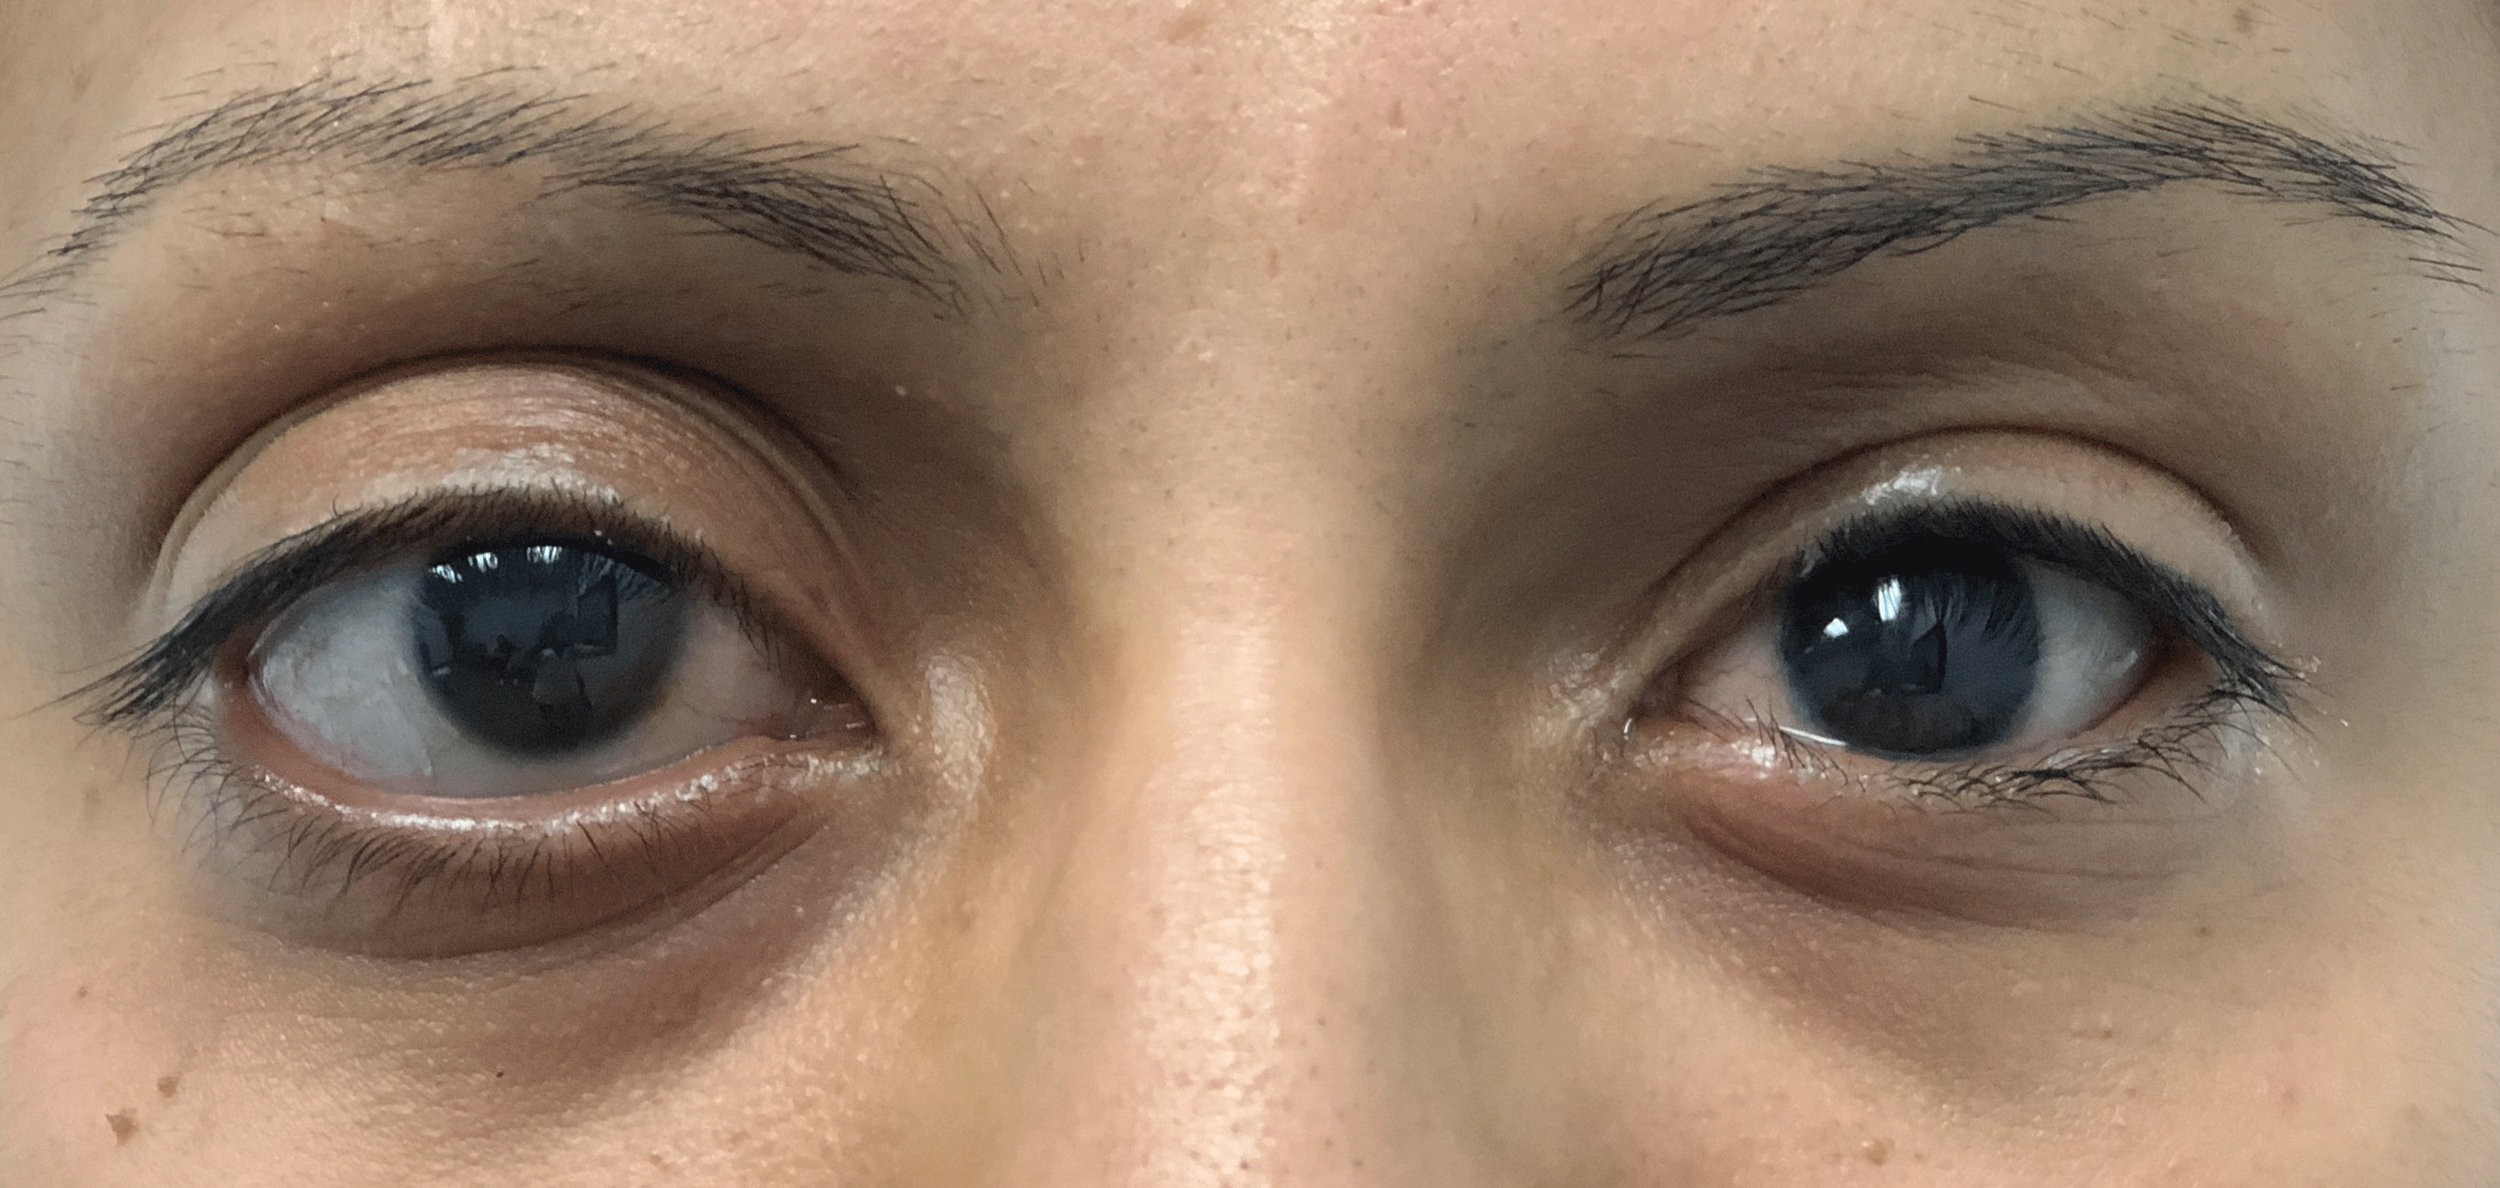 The same patient wearing a custom fitted, custom painted prosthetic eye.